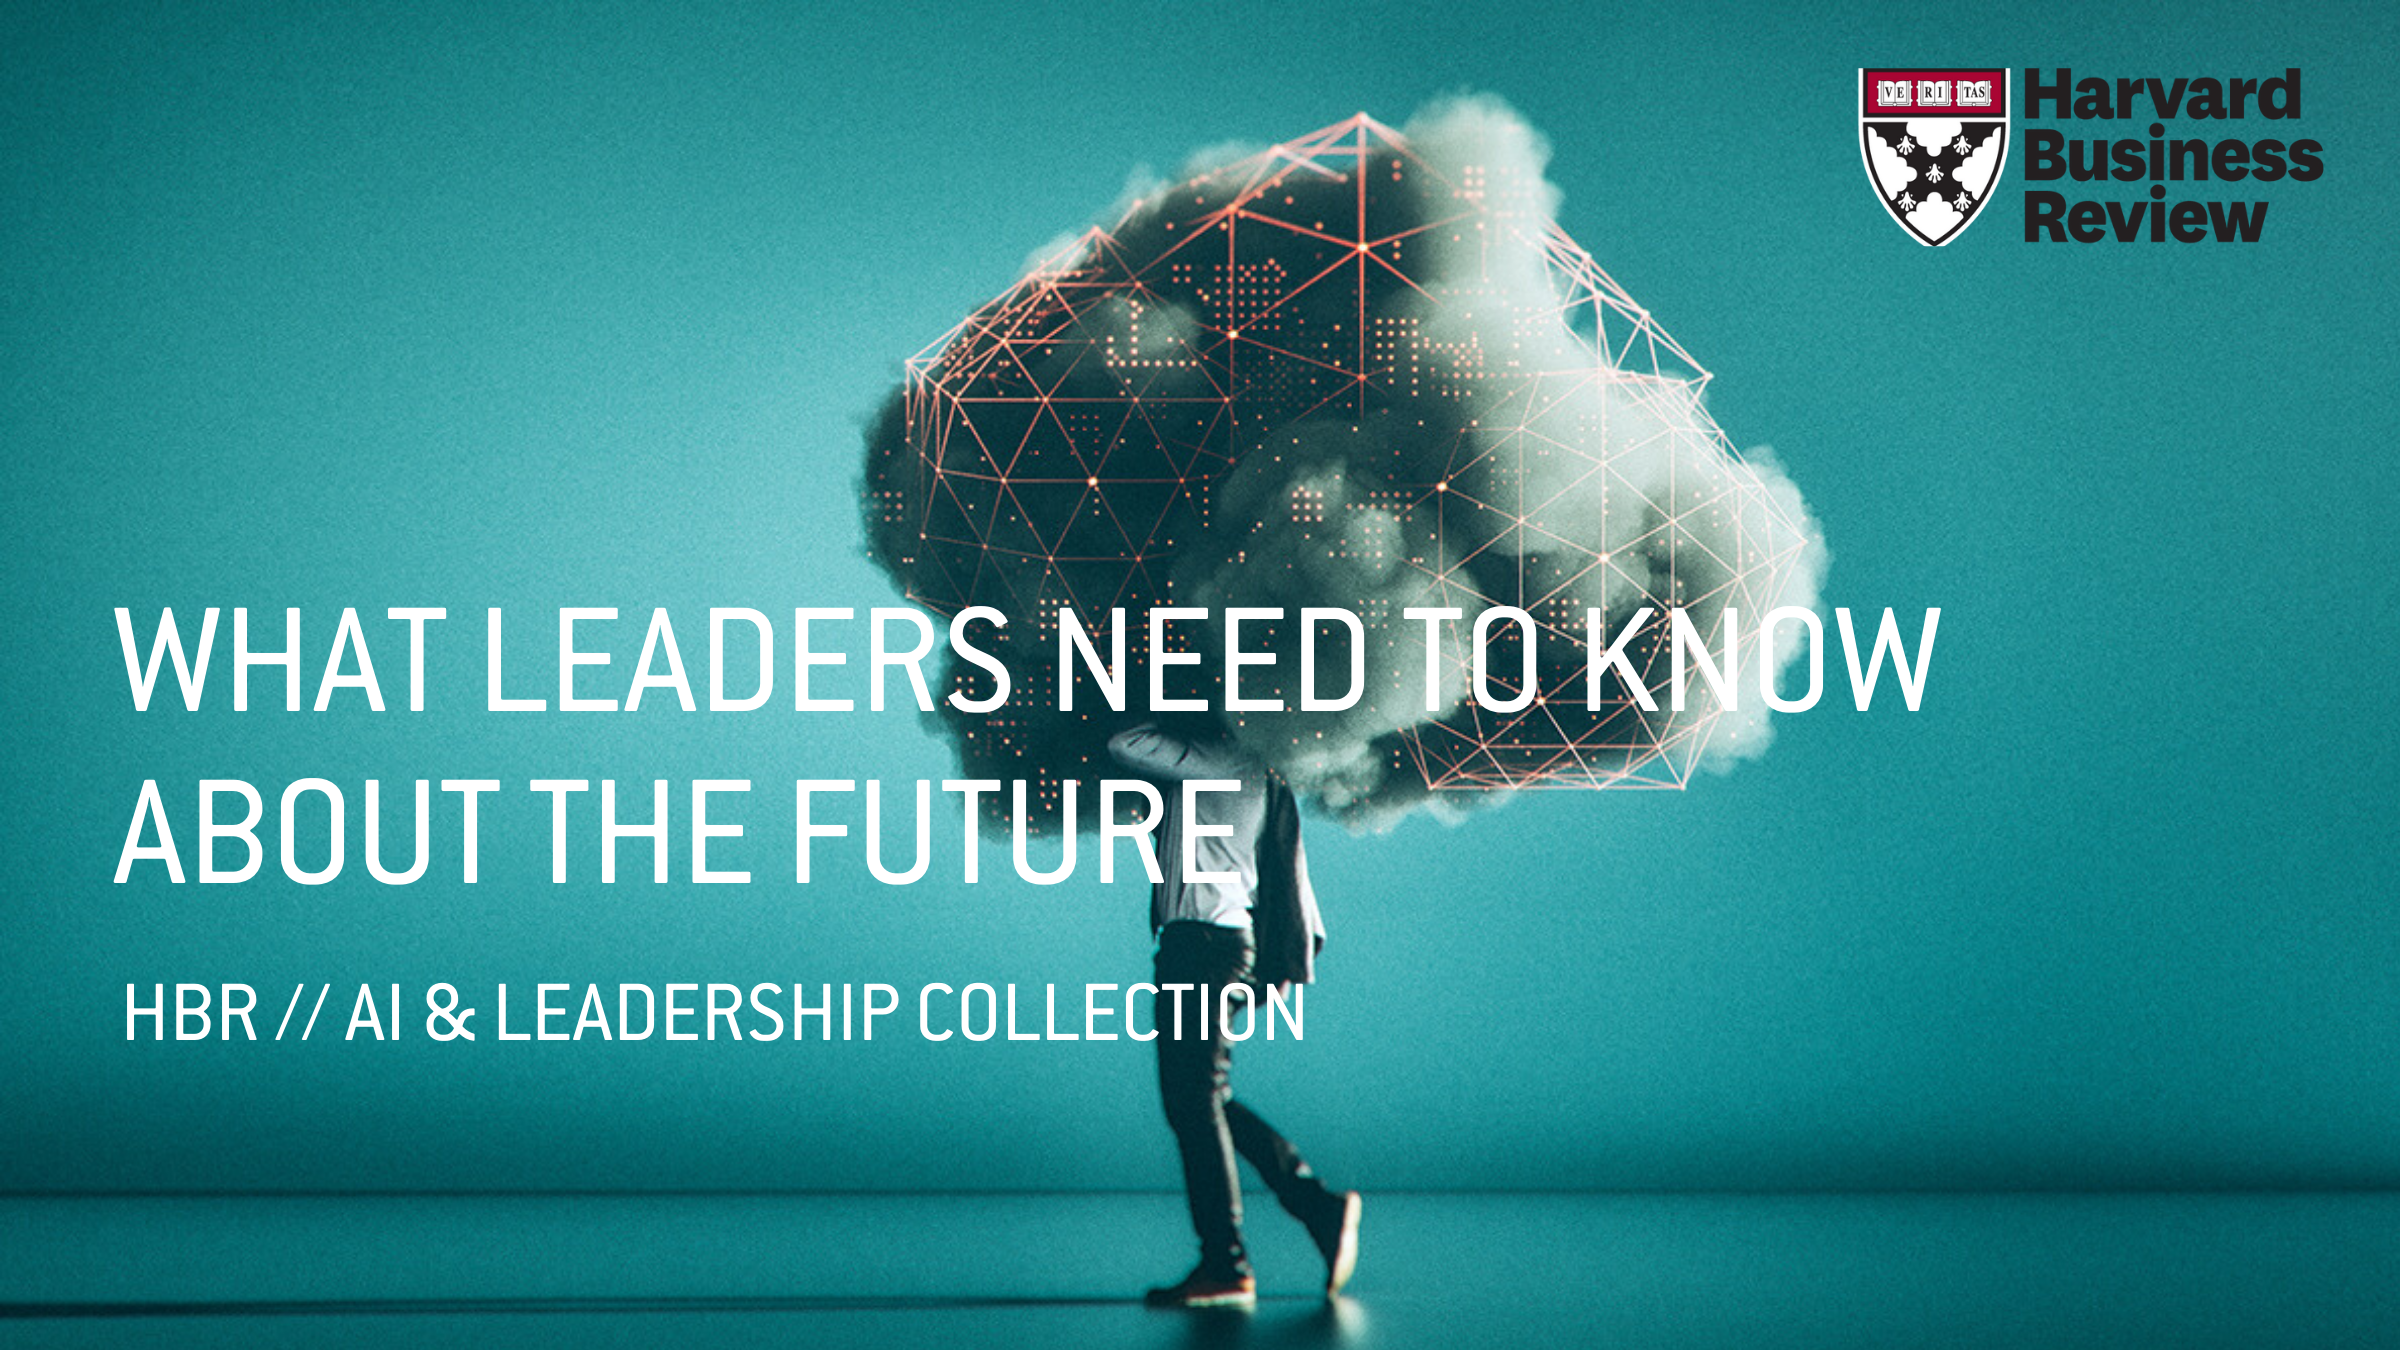 WHAT LEADERS NEED TO KNOW ABOUT THE FUTURE